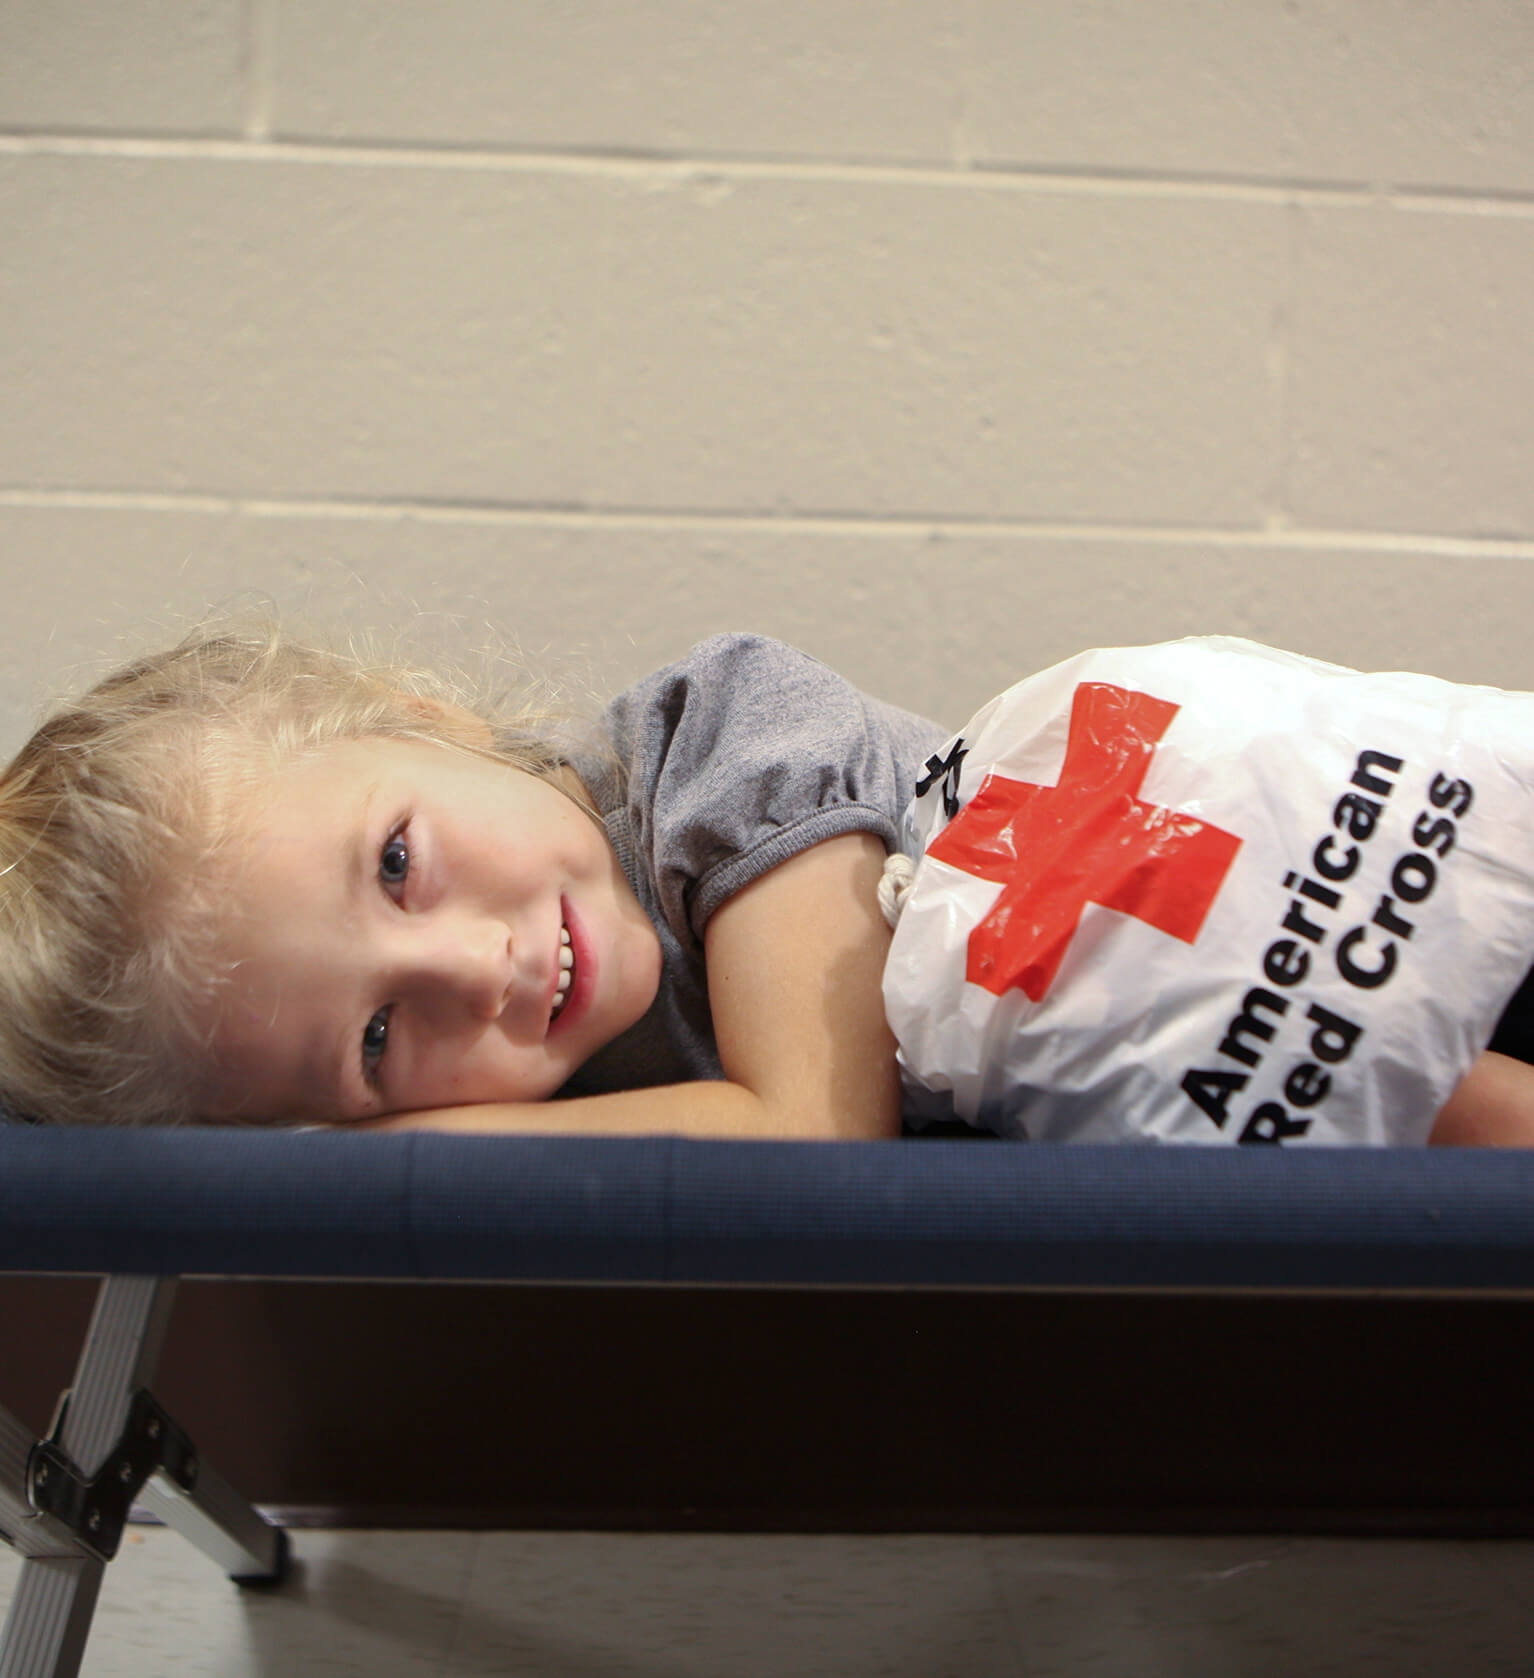 little girl on cot in shelter